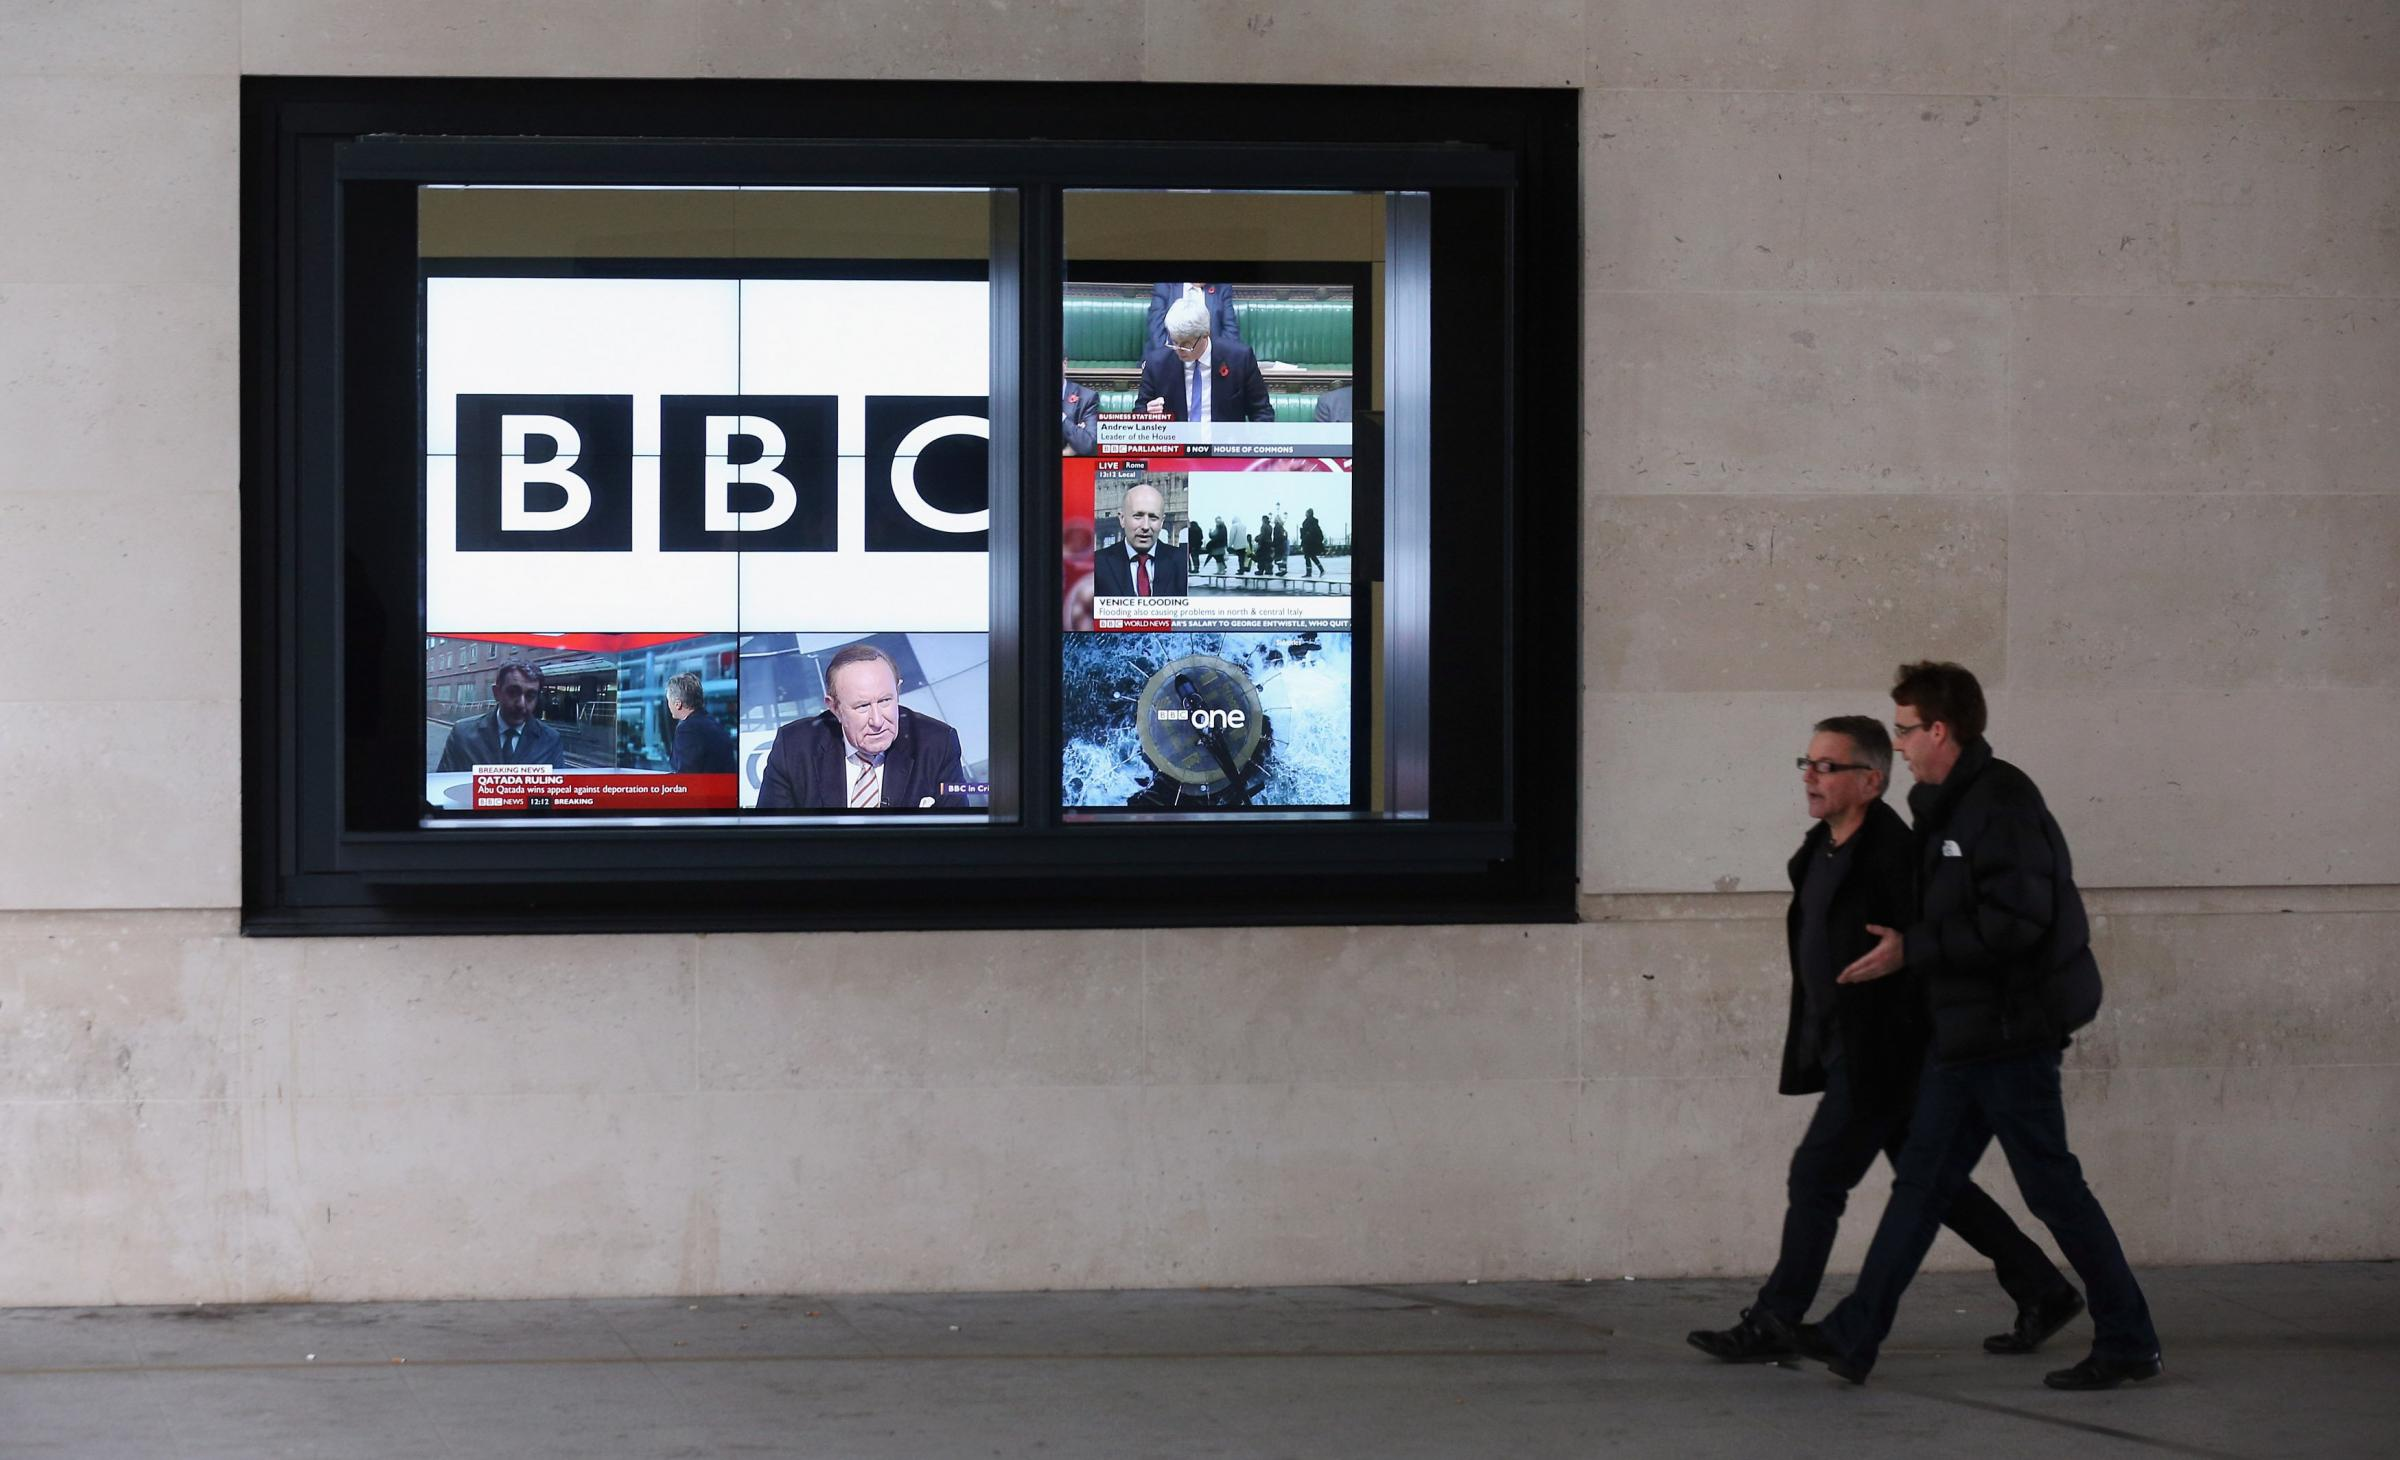 Scotland's voice in the UK is being silenced by the BBC